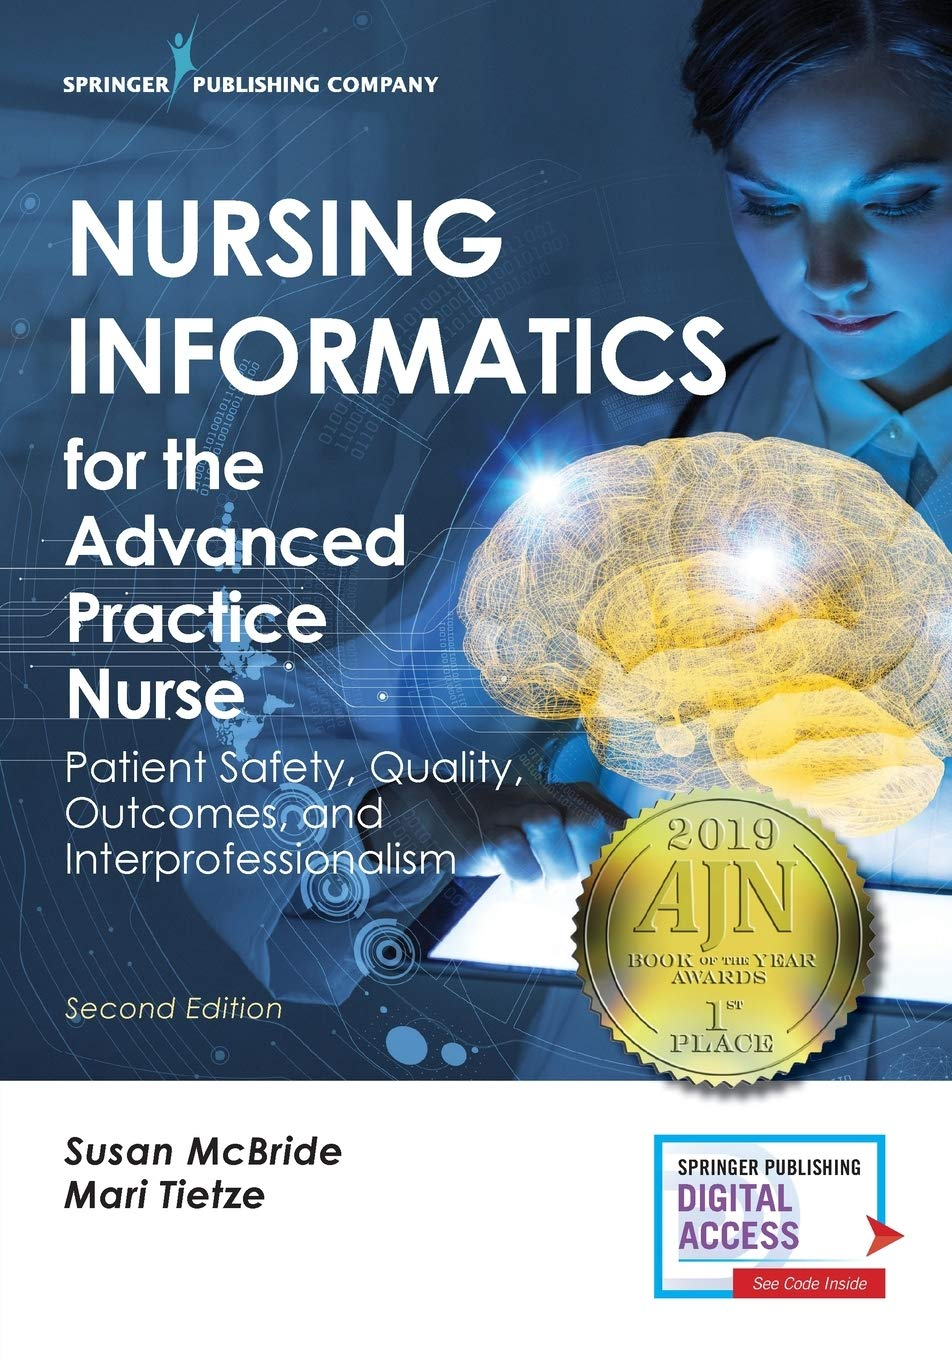 Nursing Informatics for the Advanced Practice Nurse Patient Safety, Quality, Outcomes, and Interprofessionalism - Tolerant Planet